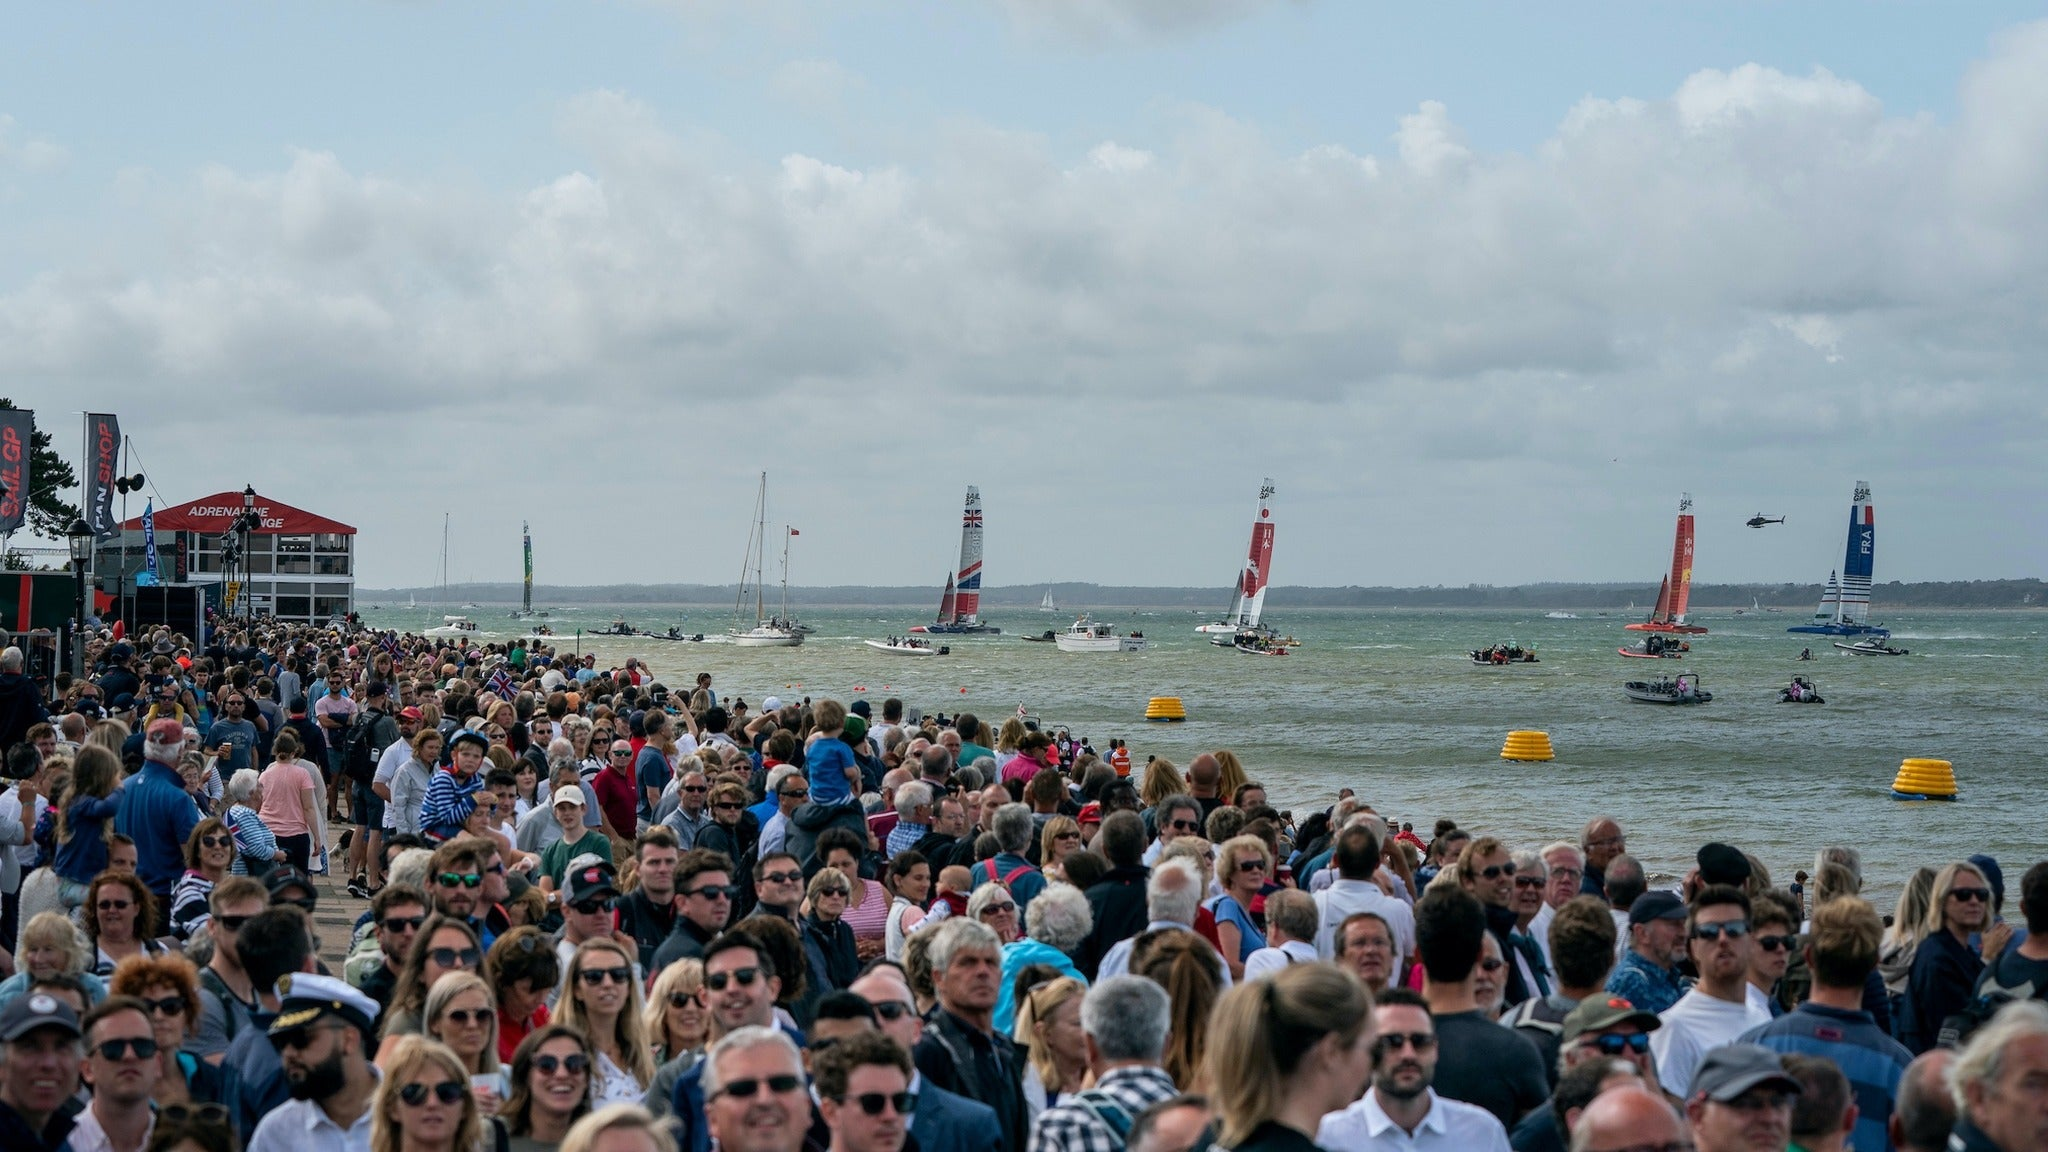 Cowes SailGP: 2 Day Spectator Boat Experience - On Water Go tickets (Copyright © Ticketmaster)